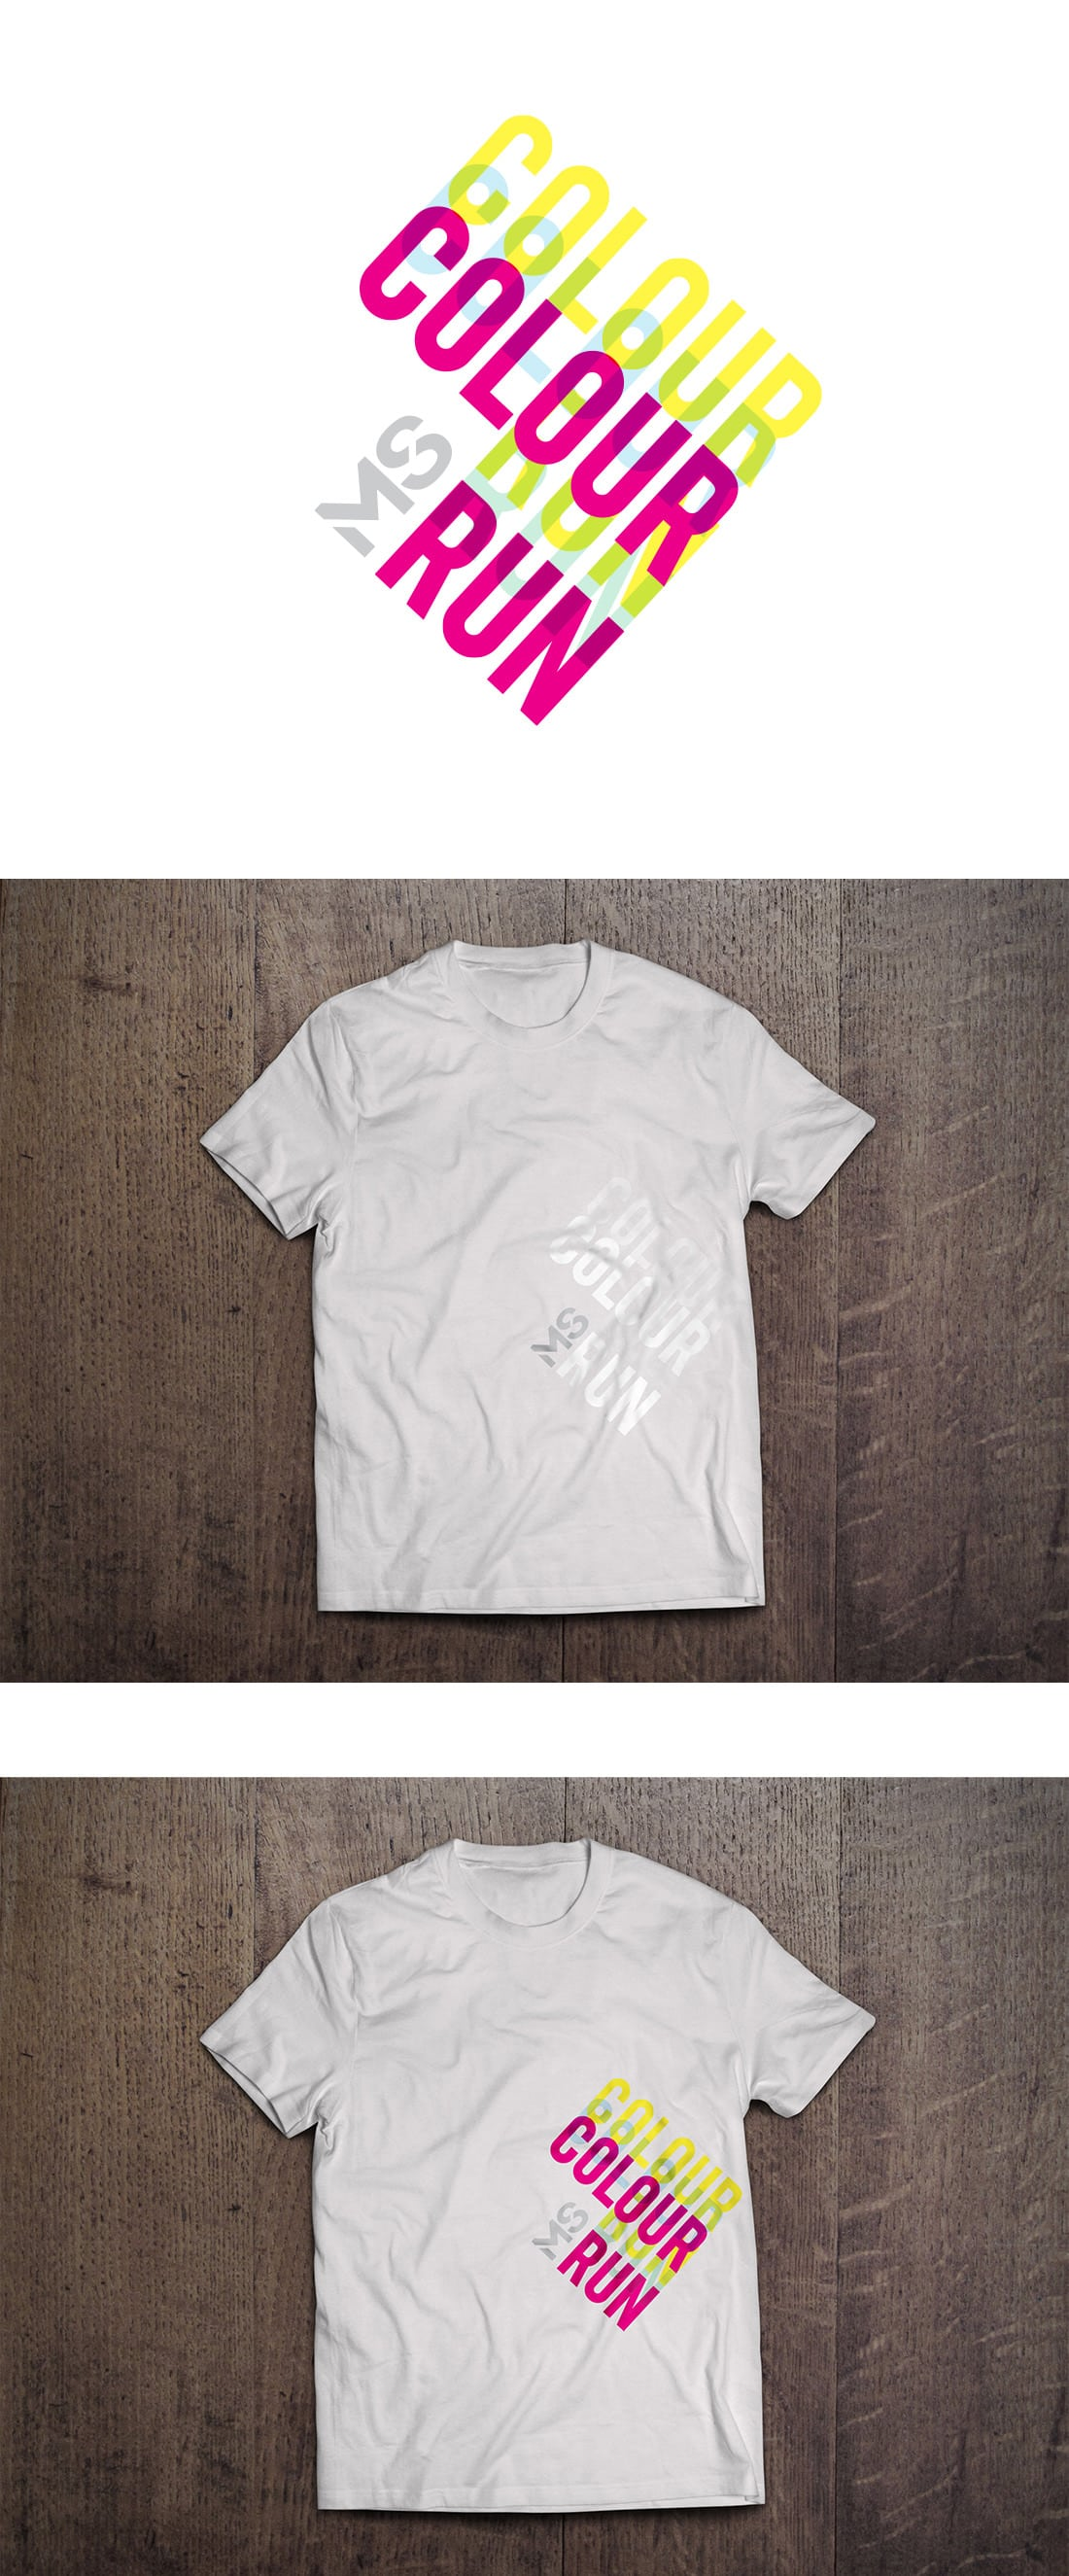 MS Colour run brand identity for 2013 on t-shirts